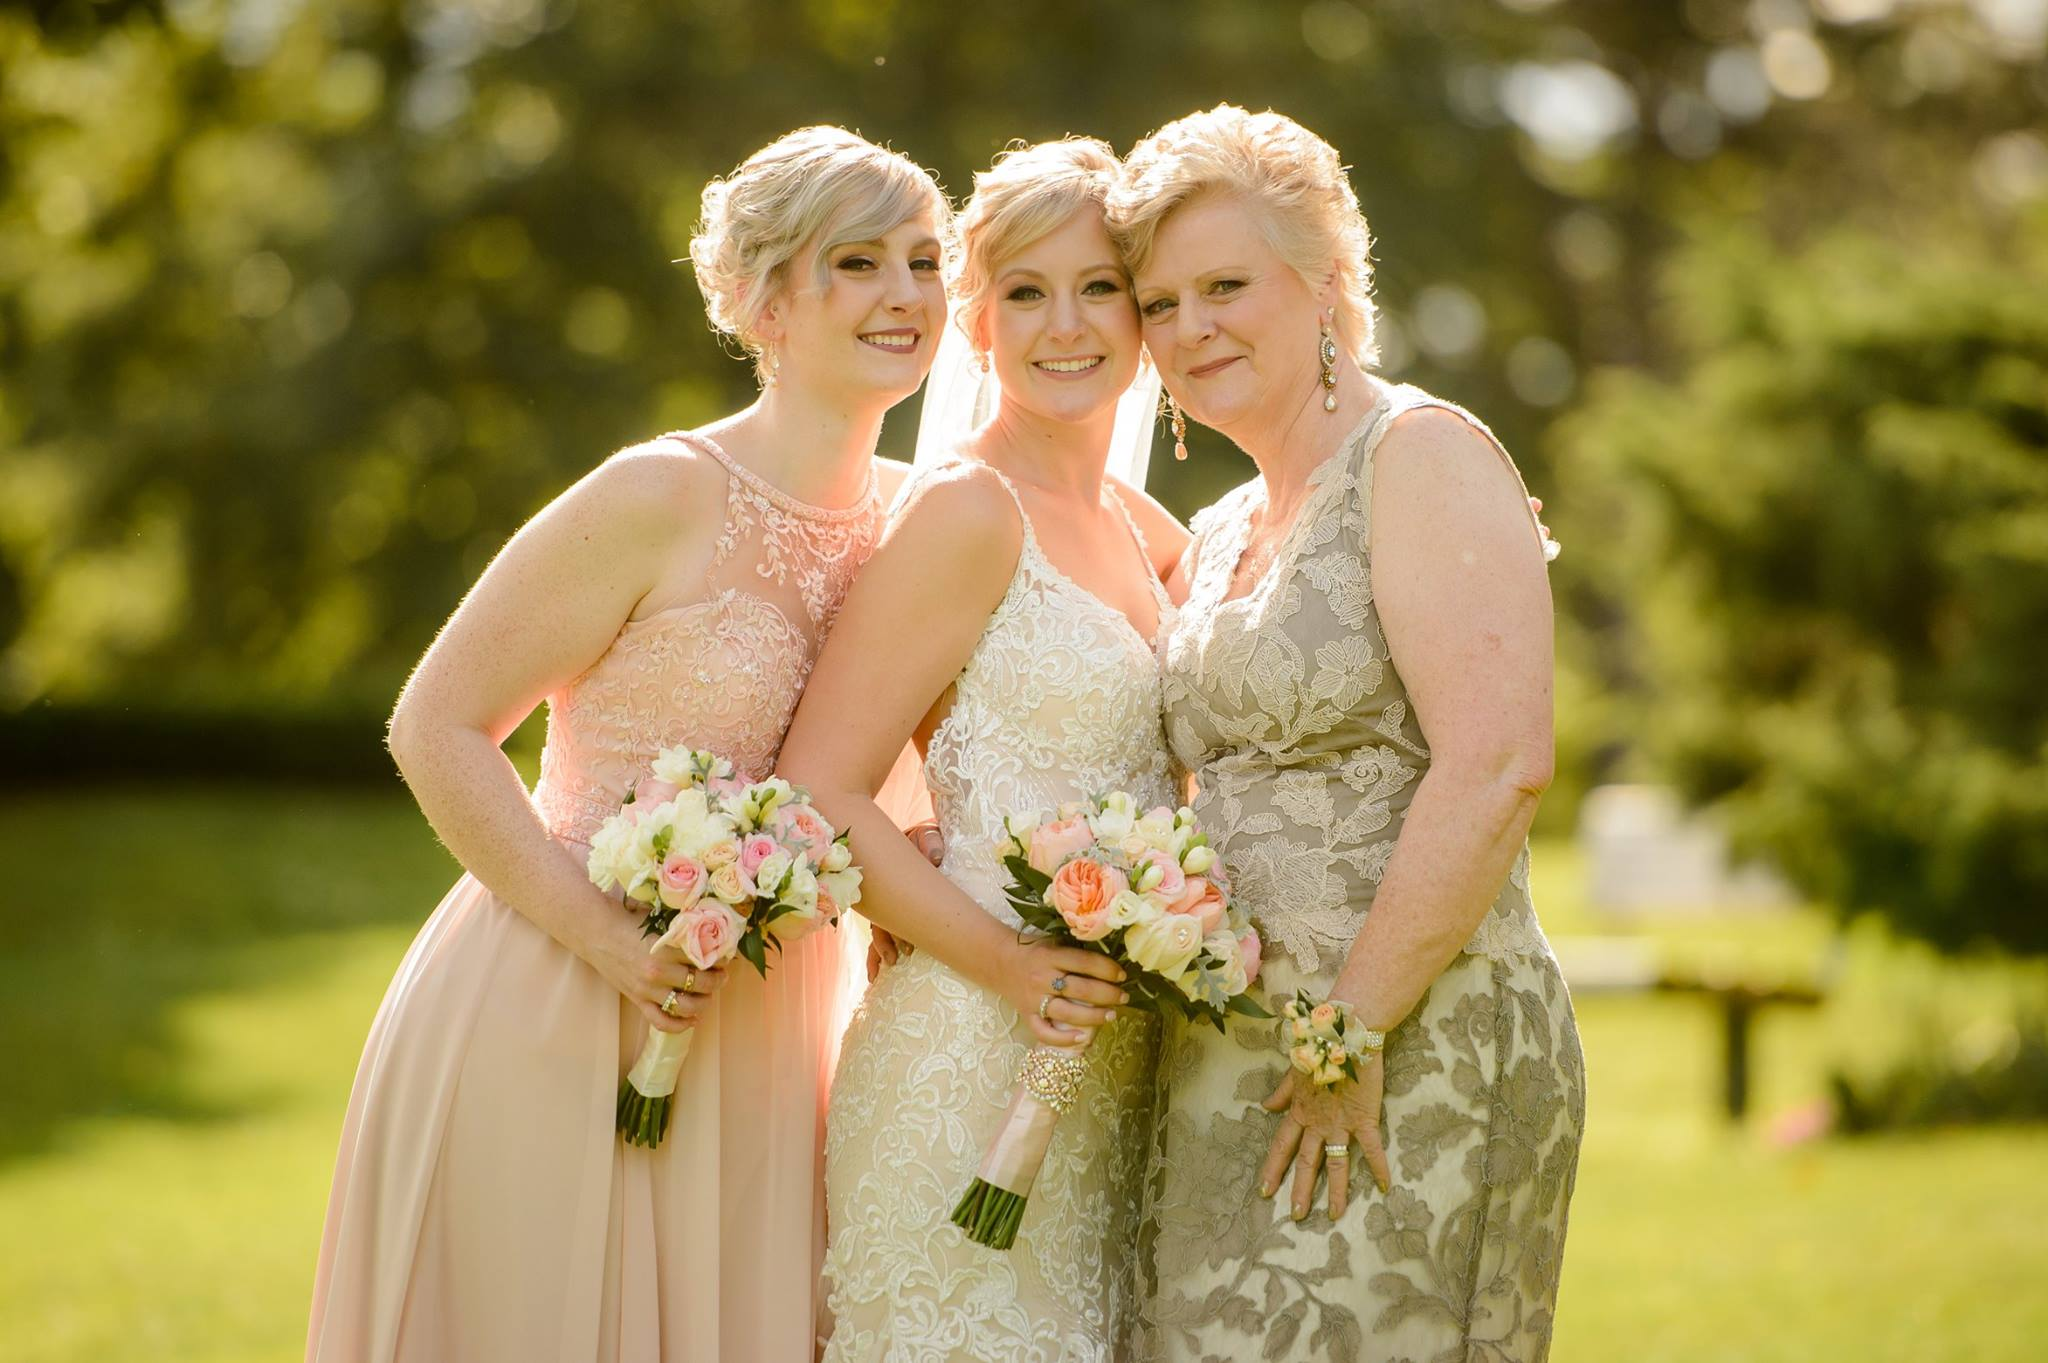 Jessi + Evan  Teamed up with  Janine Gerrits  for this wedding  Photography by  Applehead Photography